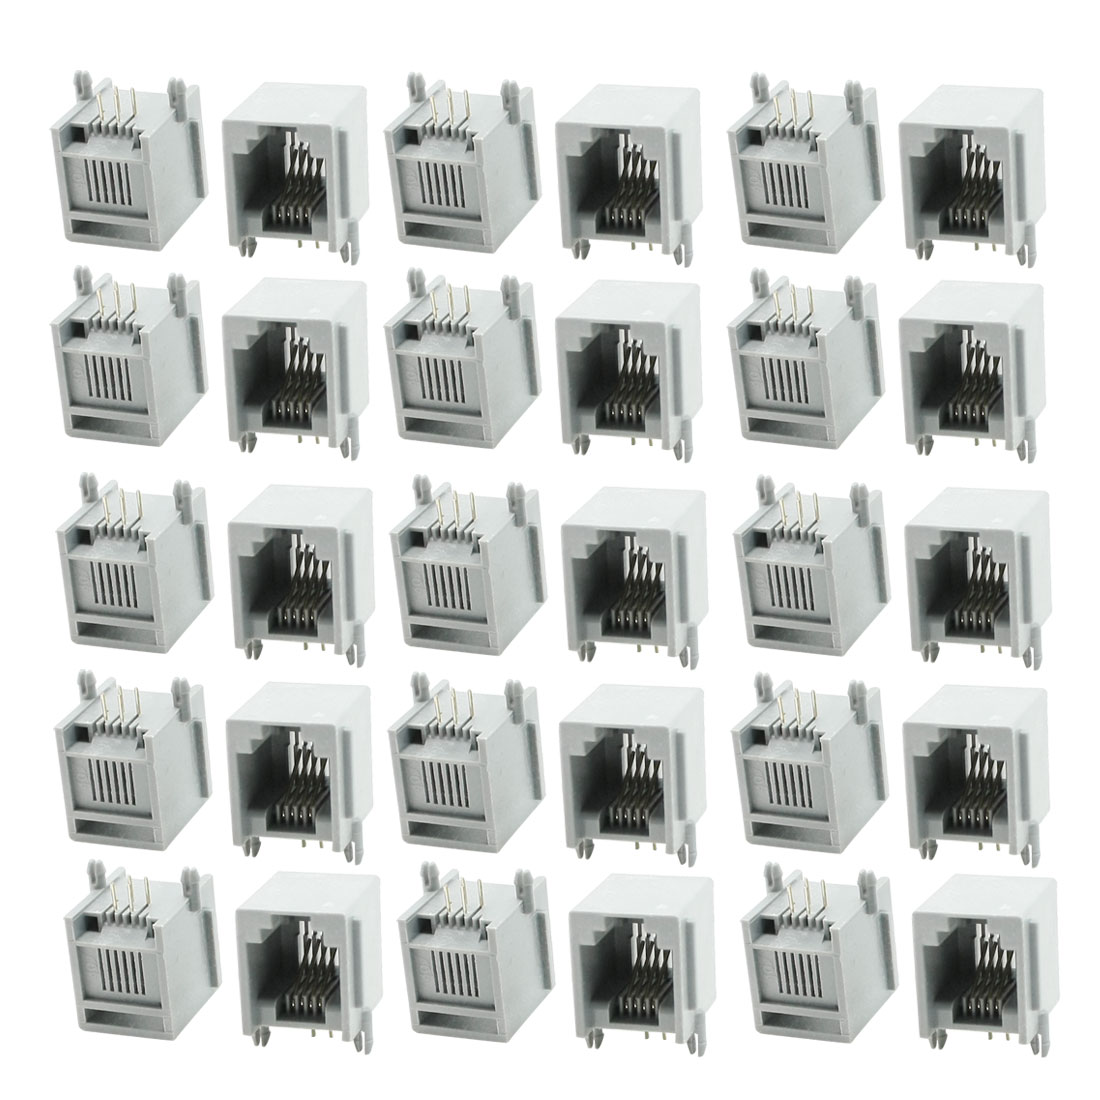 "30Pcs RJ11 6P4C PCB Jacks Horizontal Connectors 0.6"" Length for Ethernet"